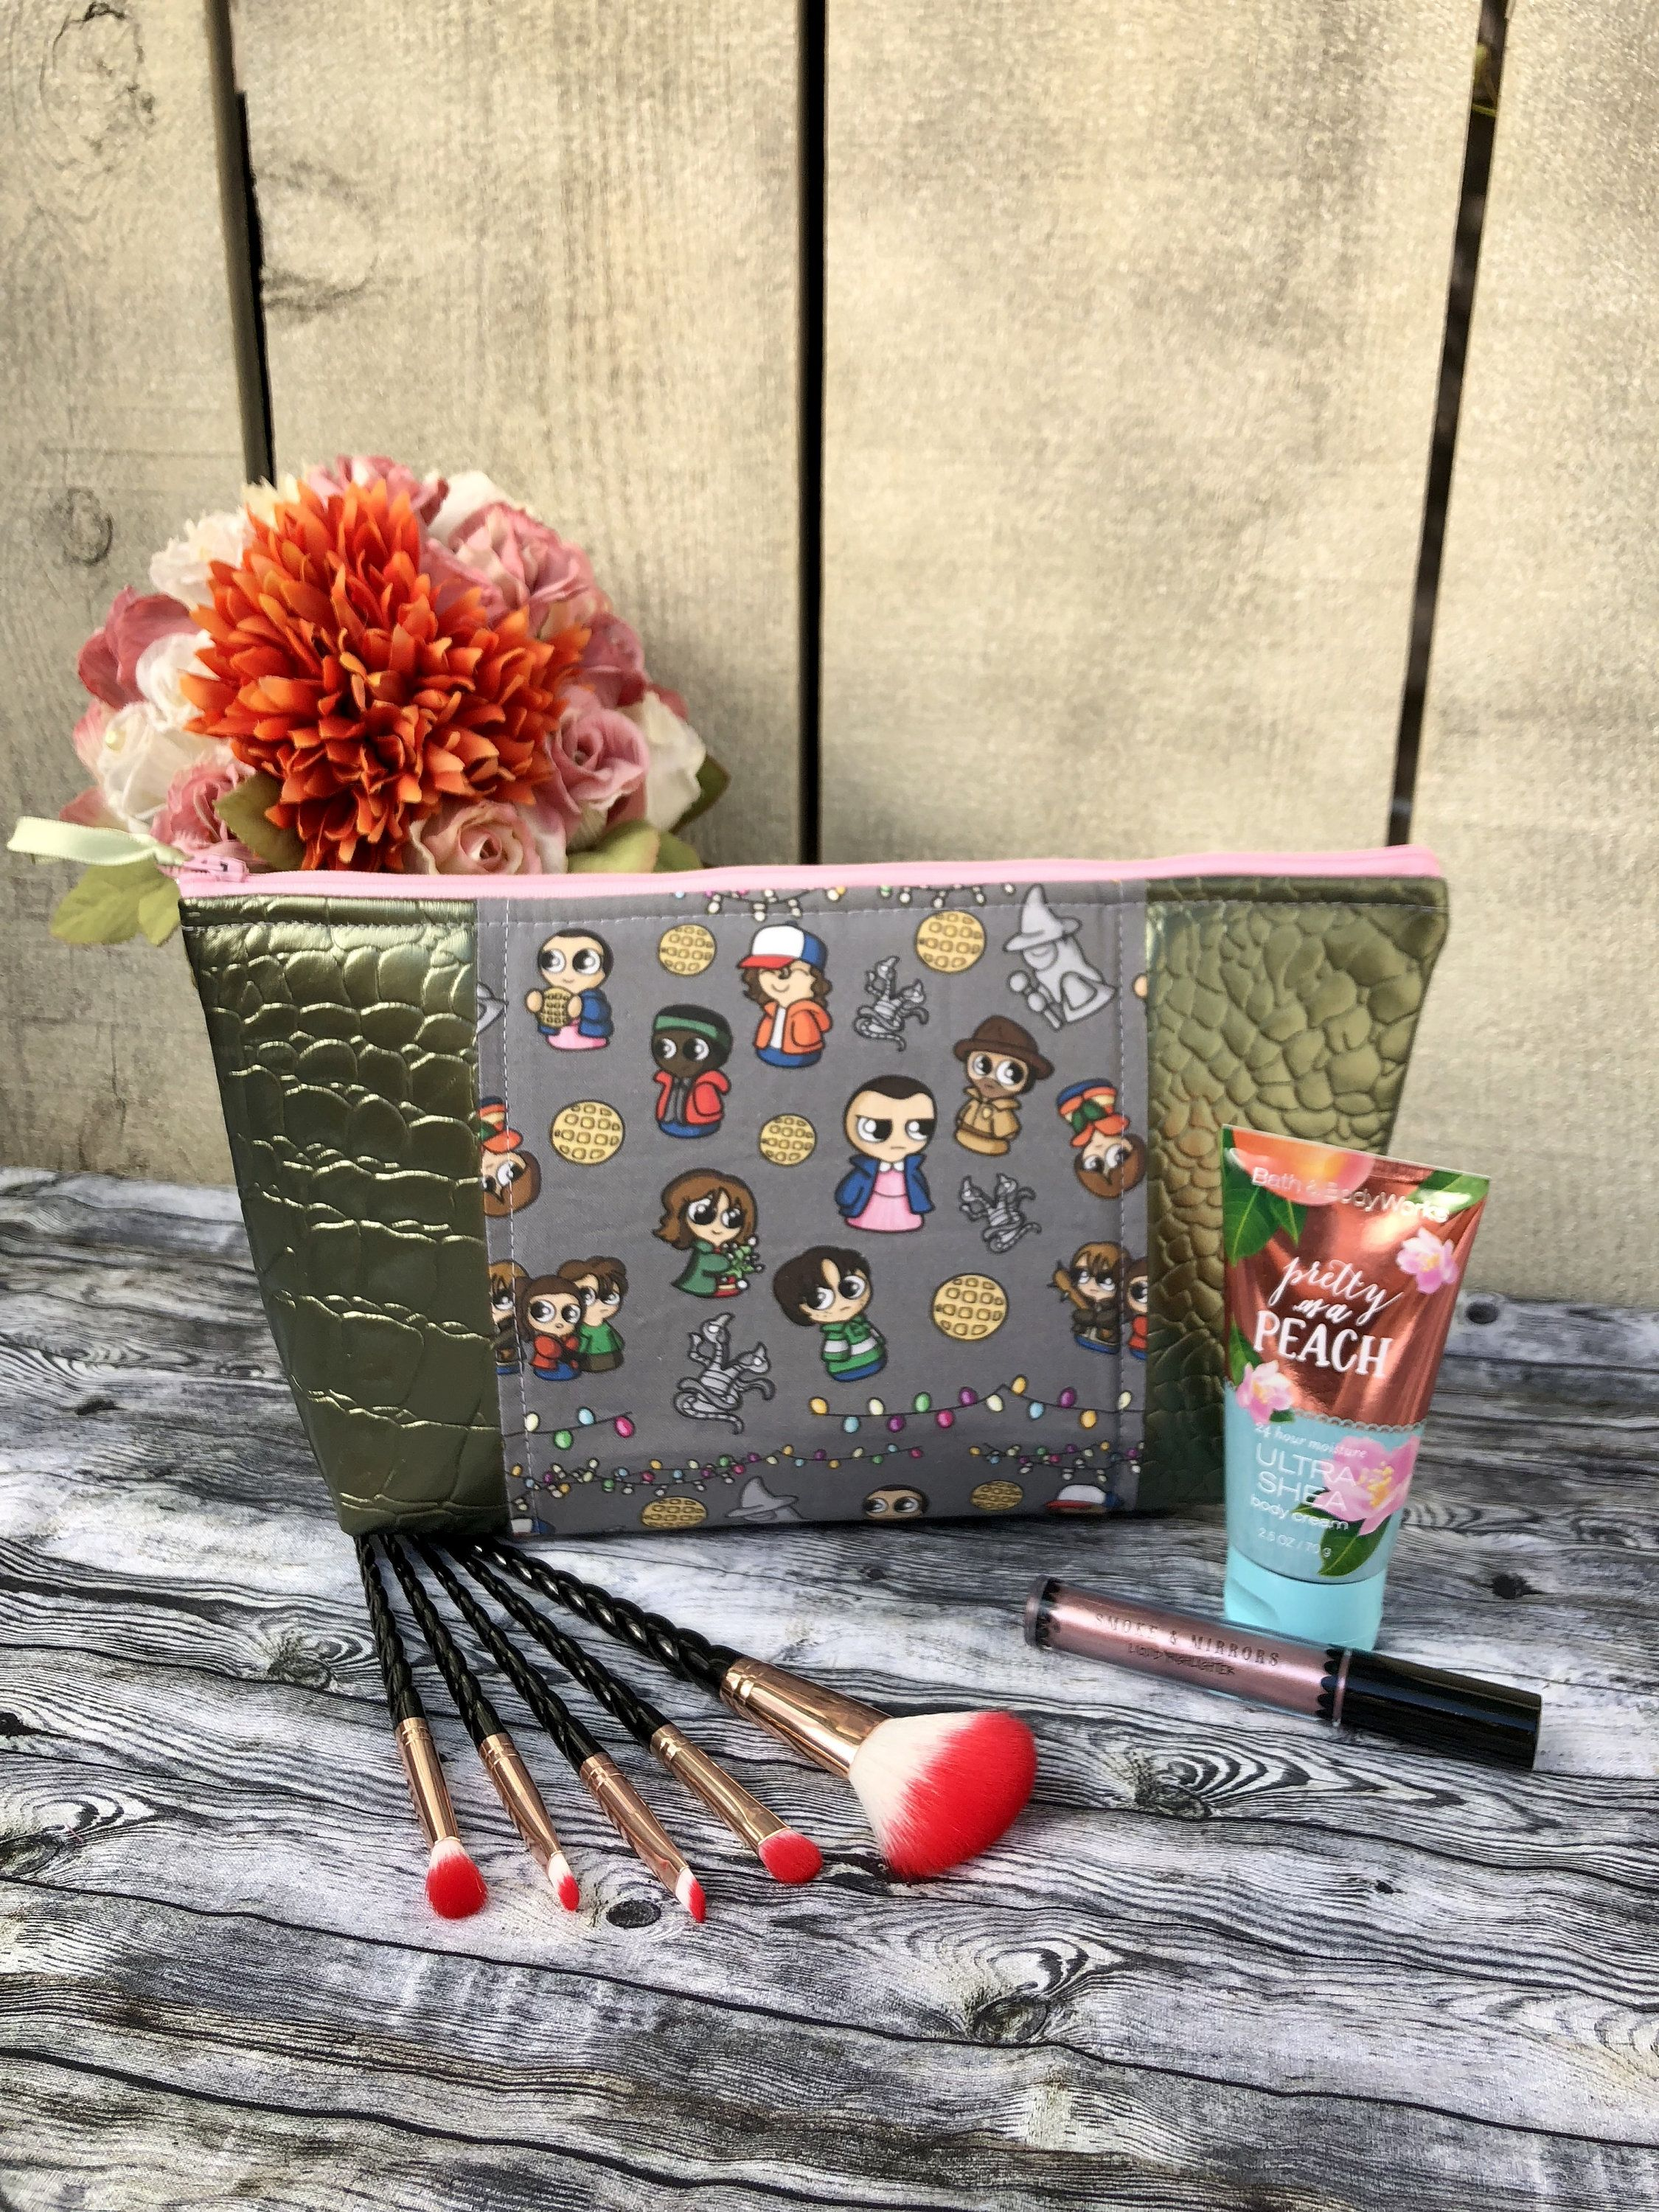 Stranger Things beauty bag.. may have been made with skin